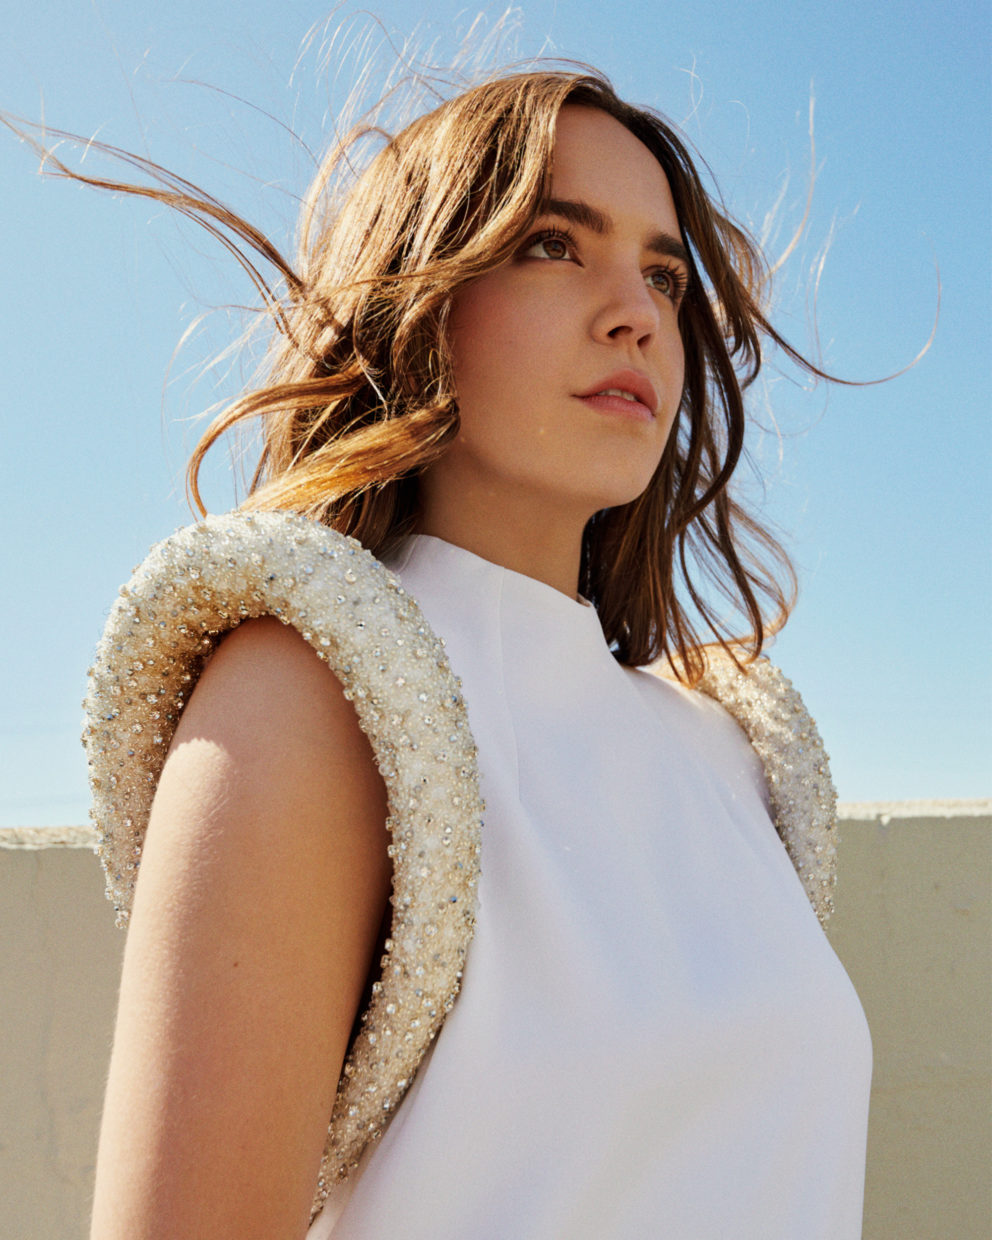 210323 0040 Sbjct Bailee Madison 441 By Christian Hogstedt